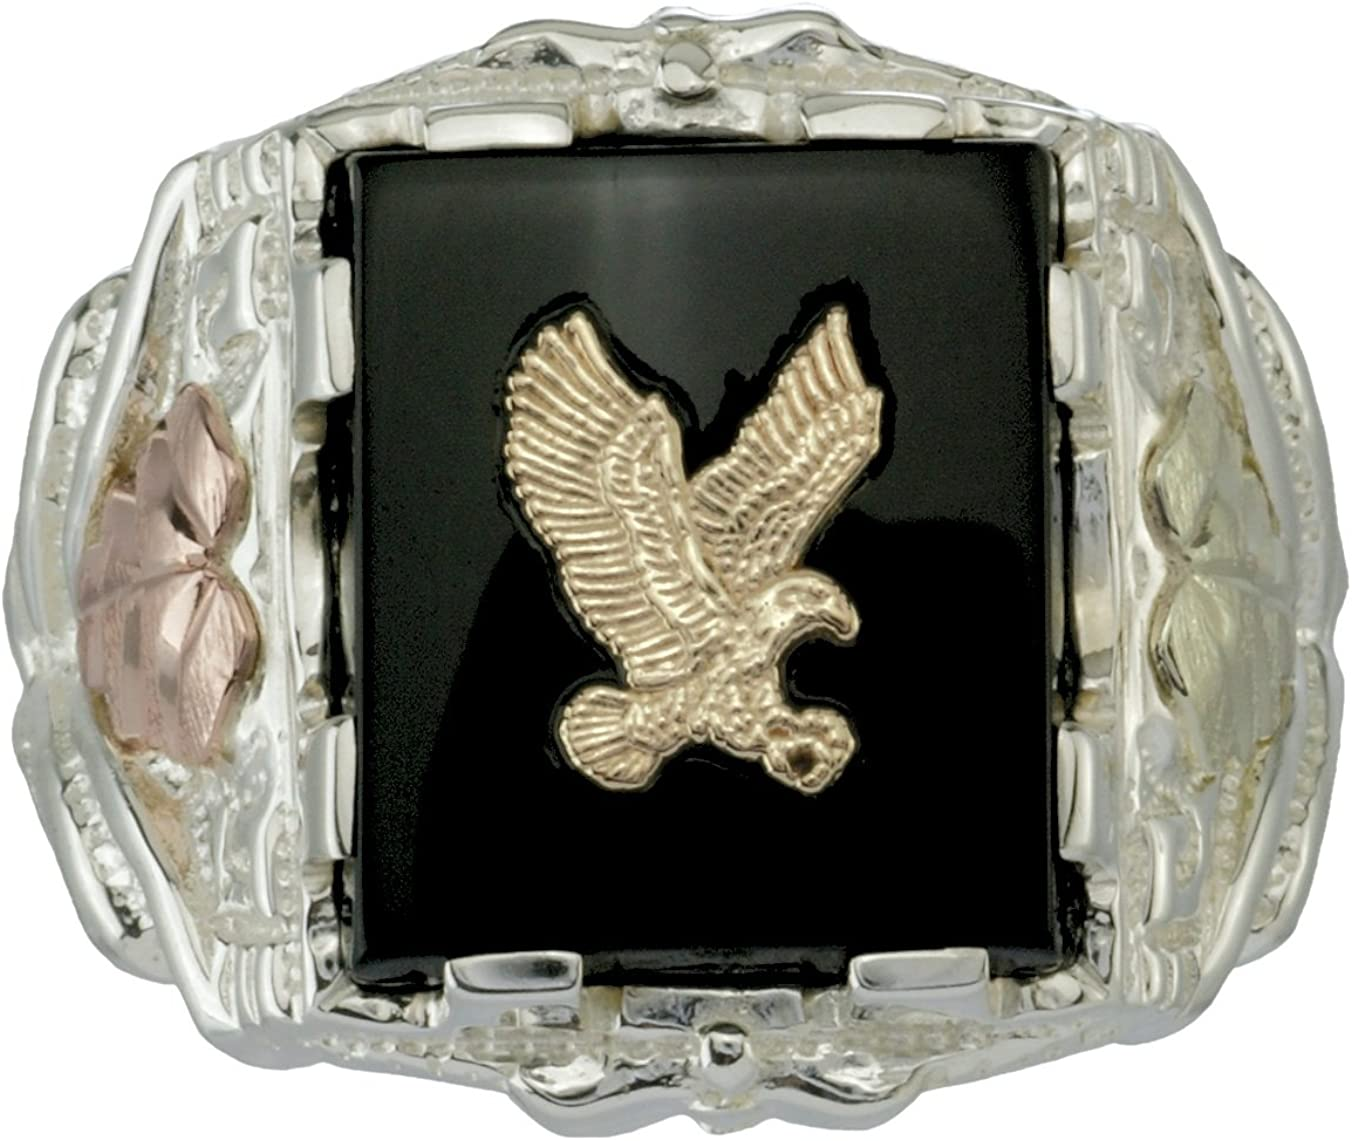 Men's Onyx Eagle Ring, 10k Yellow Gold, Sterling Silver, 12k Green and Rose Gold Black Hills Gold Motif